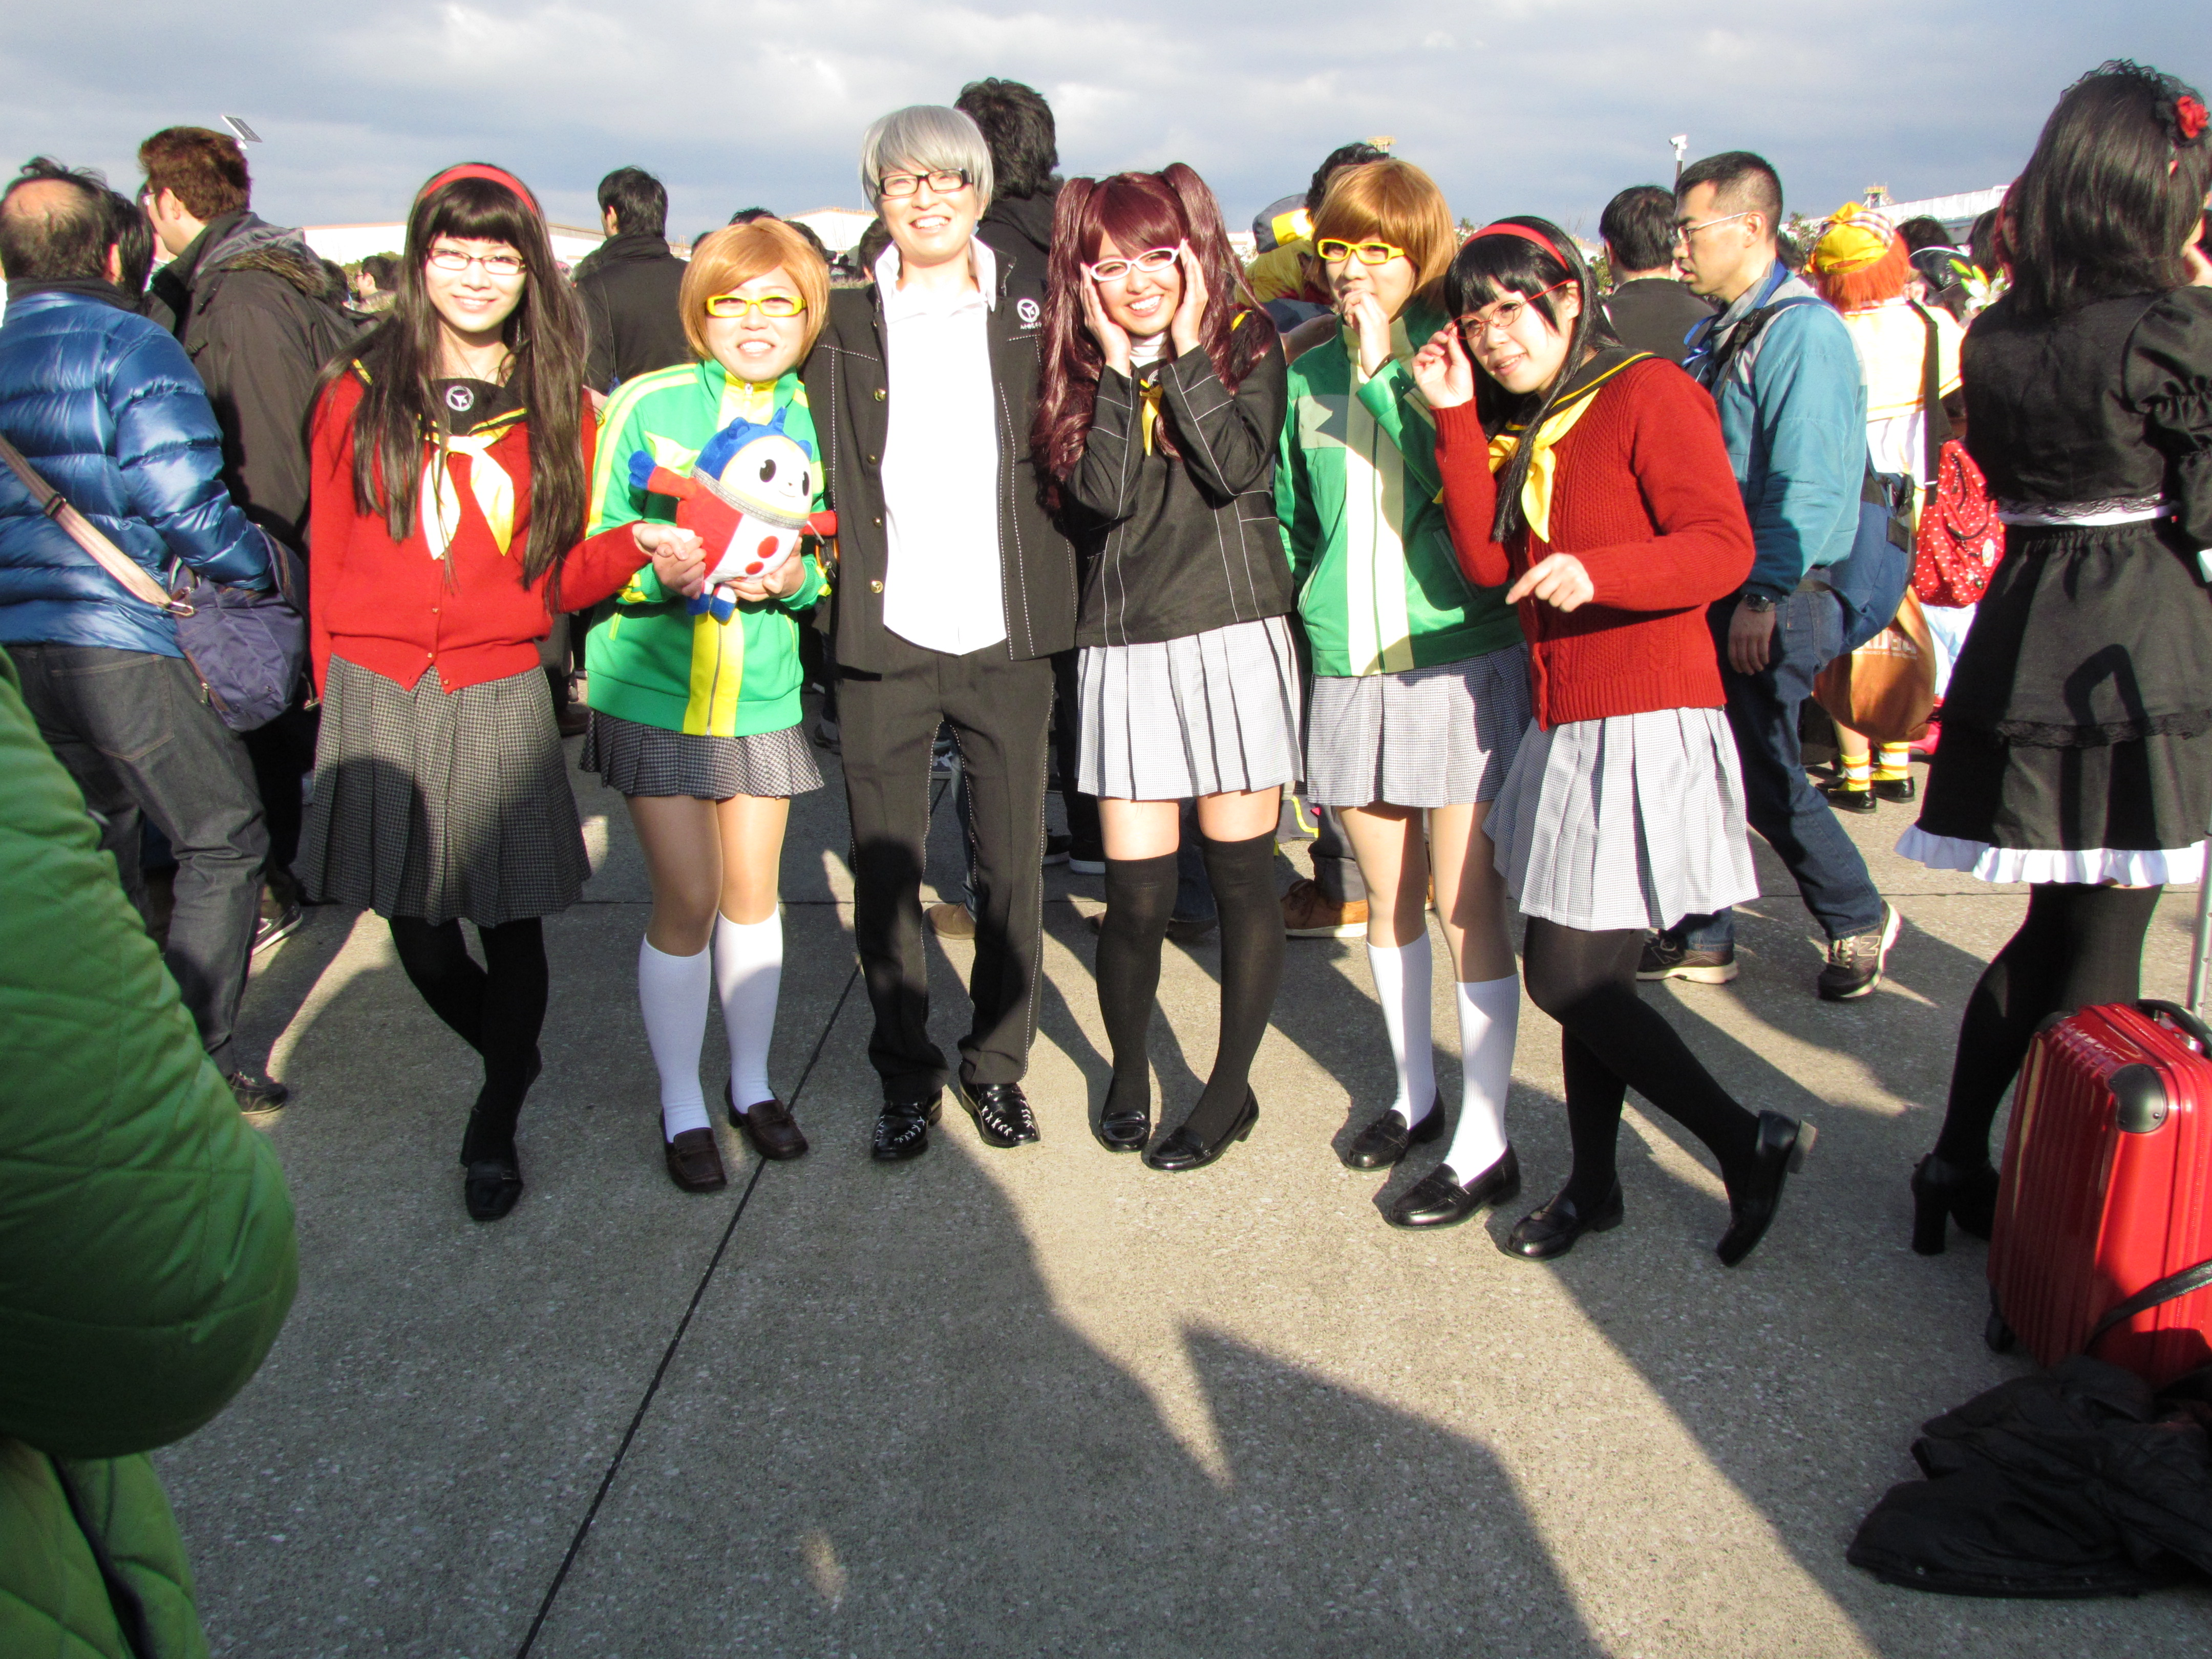 File:Comiket 83 - Persona cosplay.JPG - Wikimedia Commons